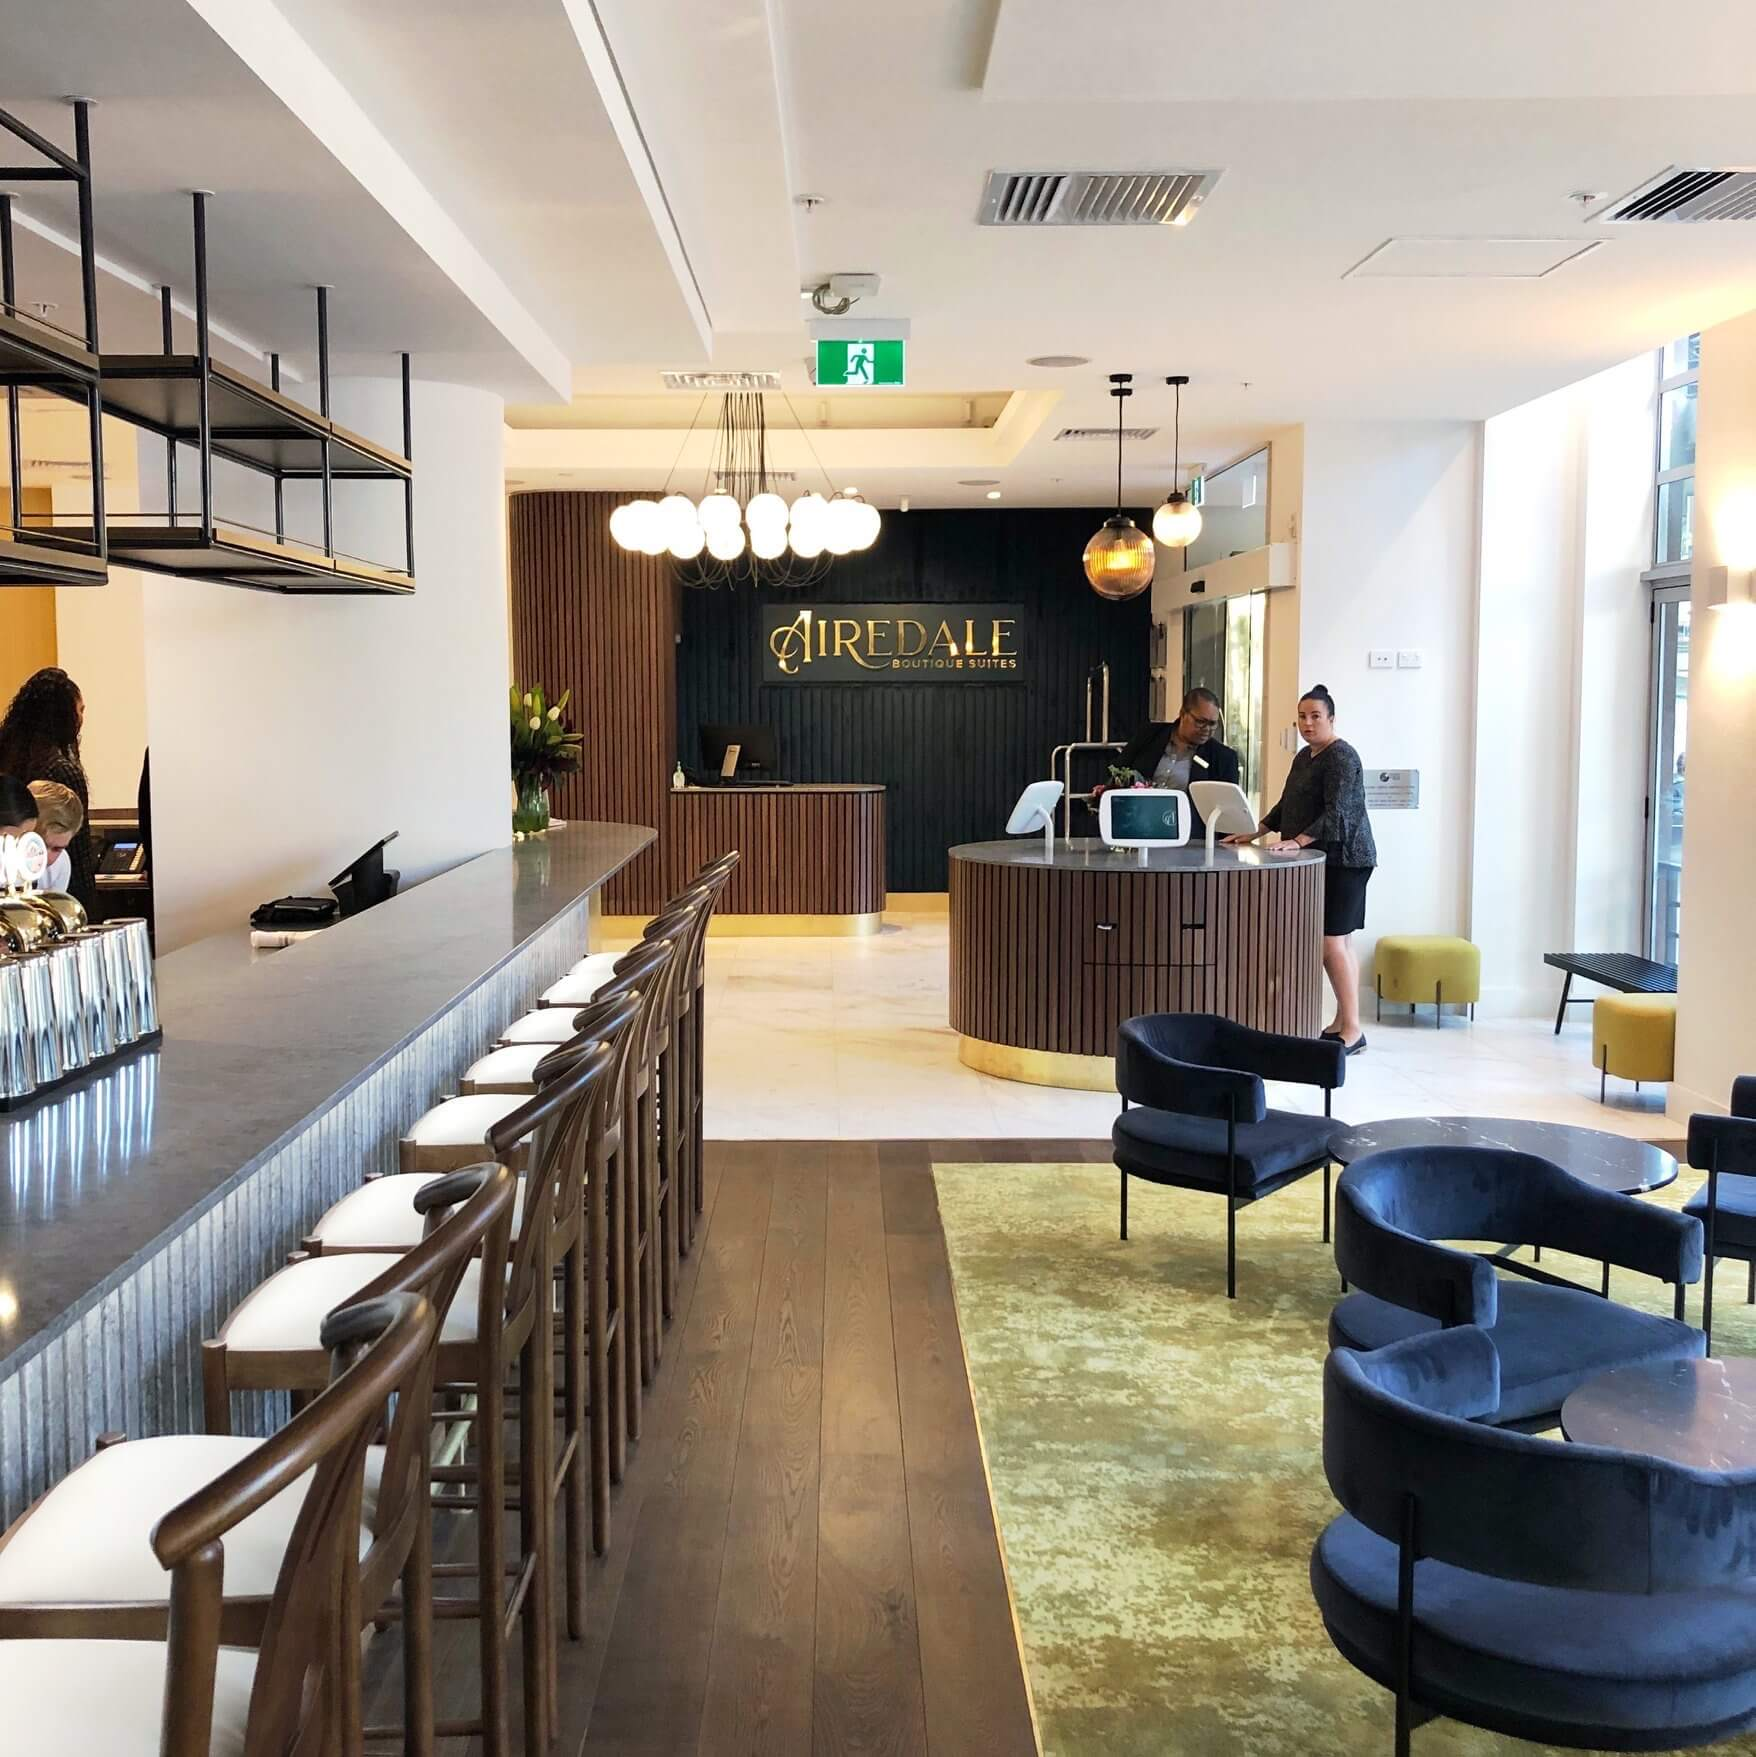 Astep chandelier lights up Airedale Boutique Suites by Context Architects